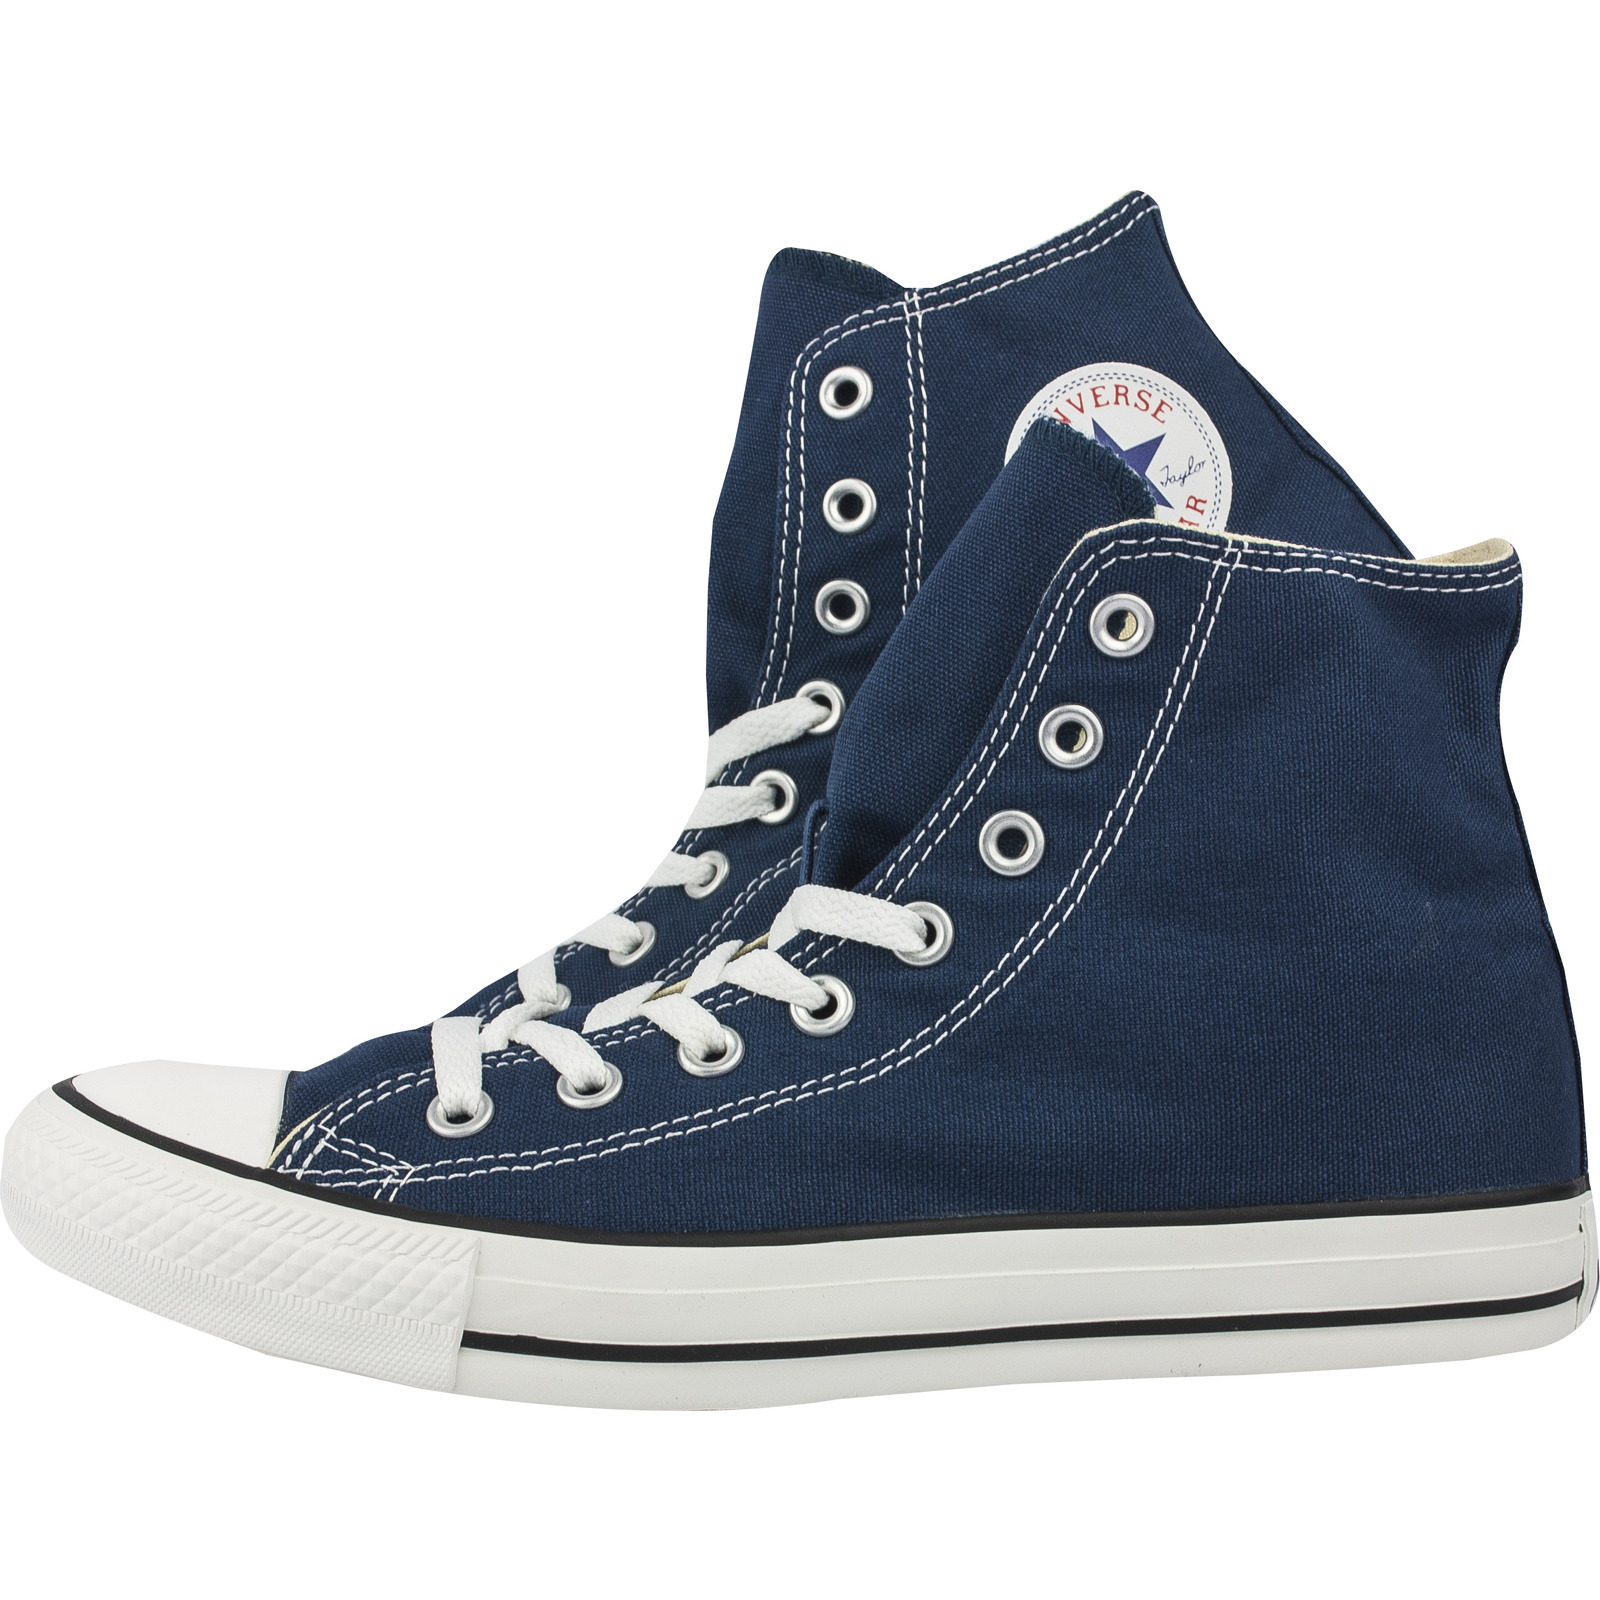 Star Navy HI High Tops Trainer Lace